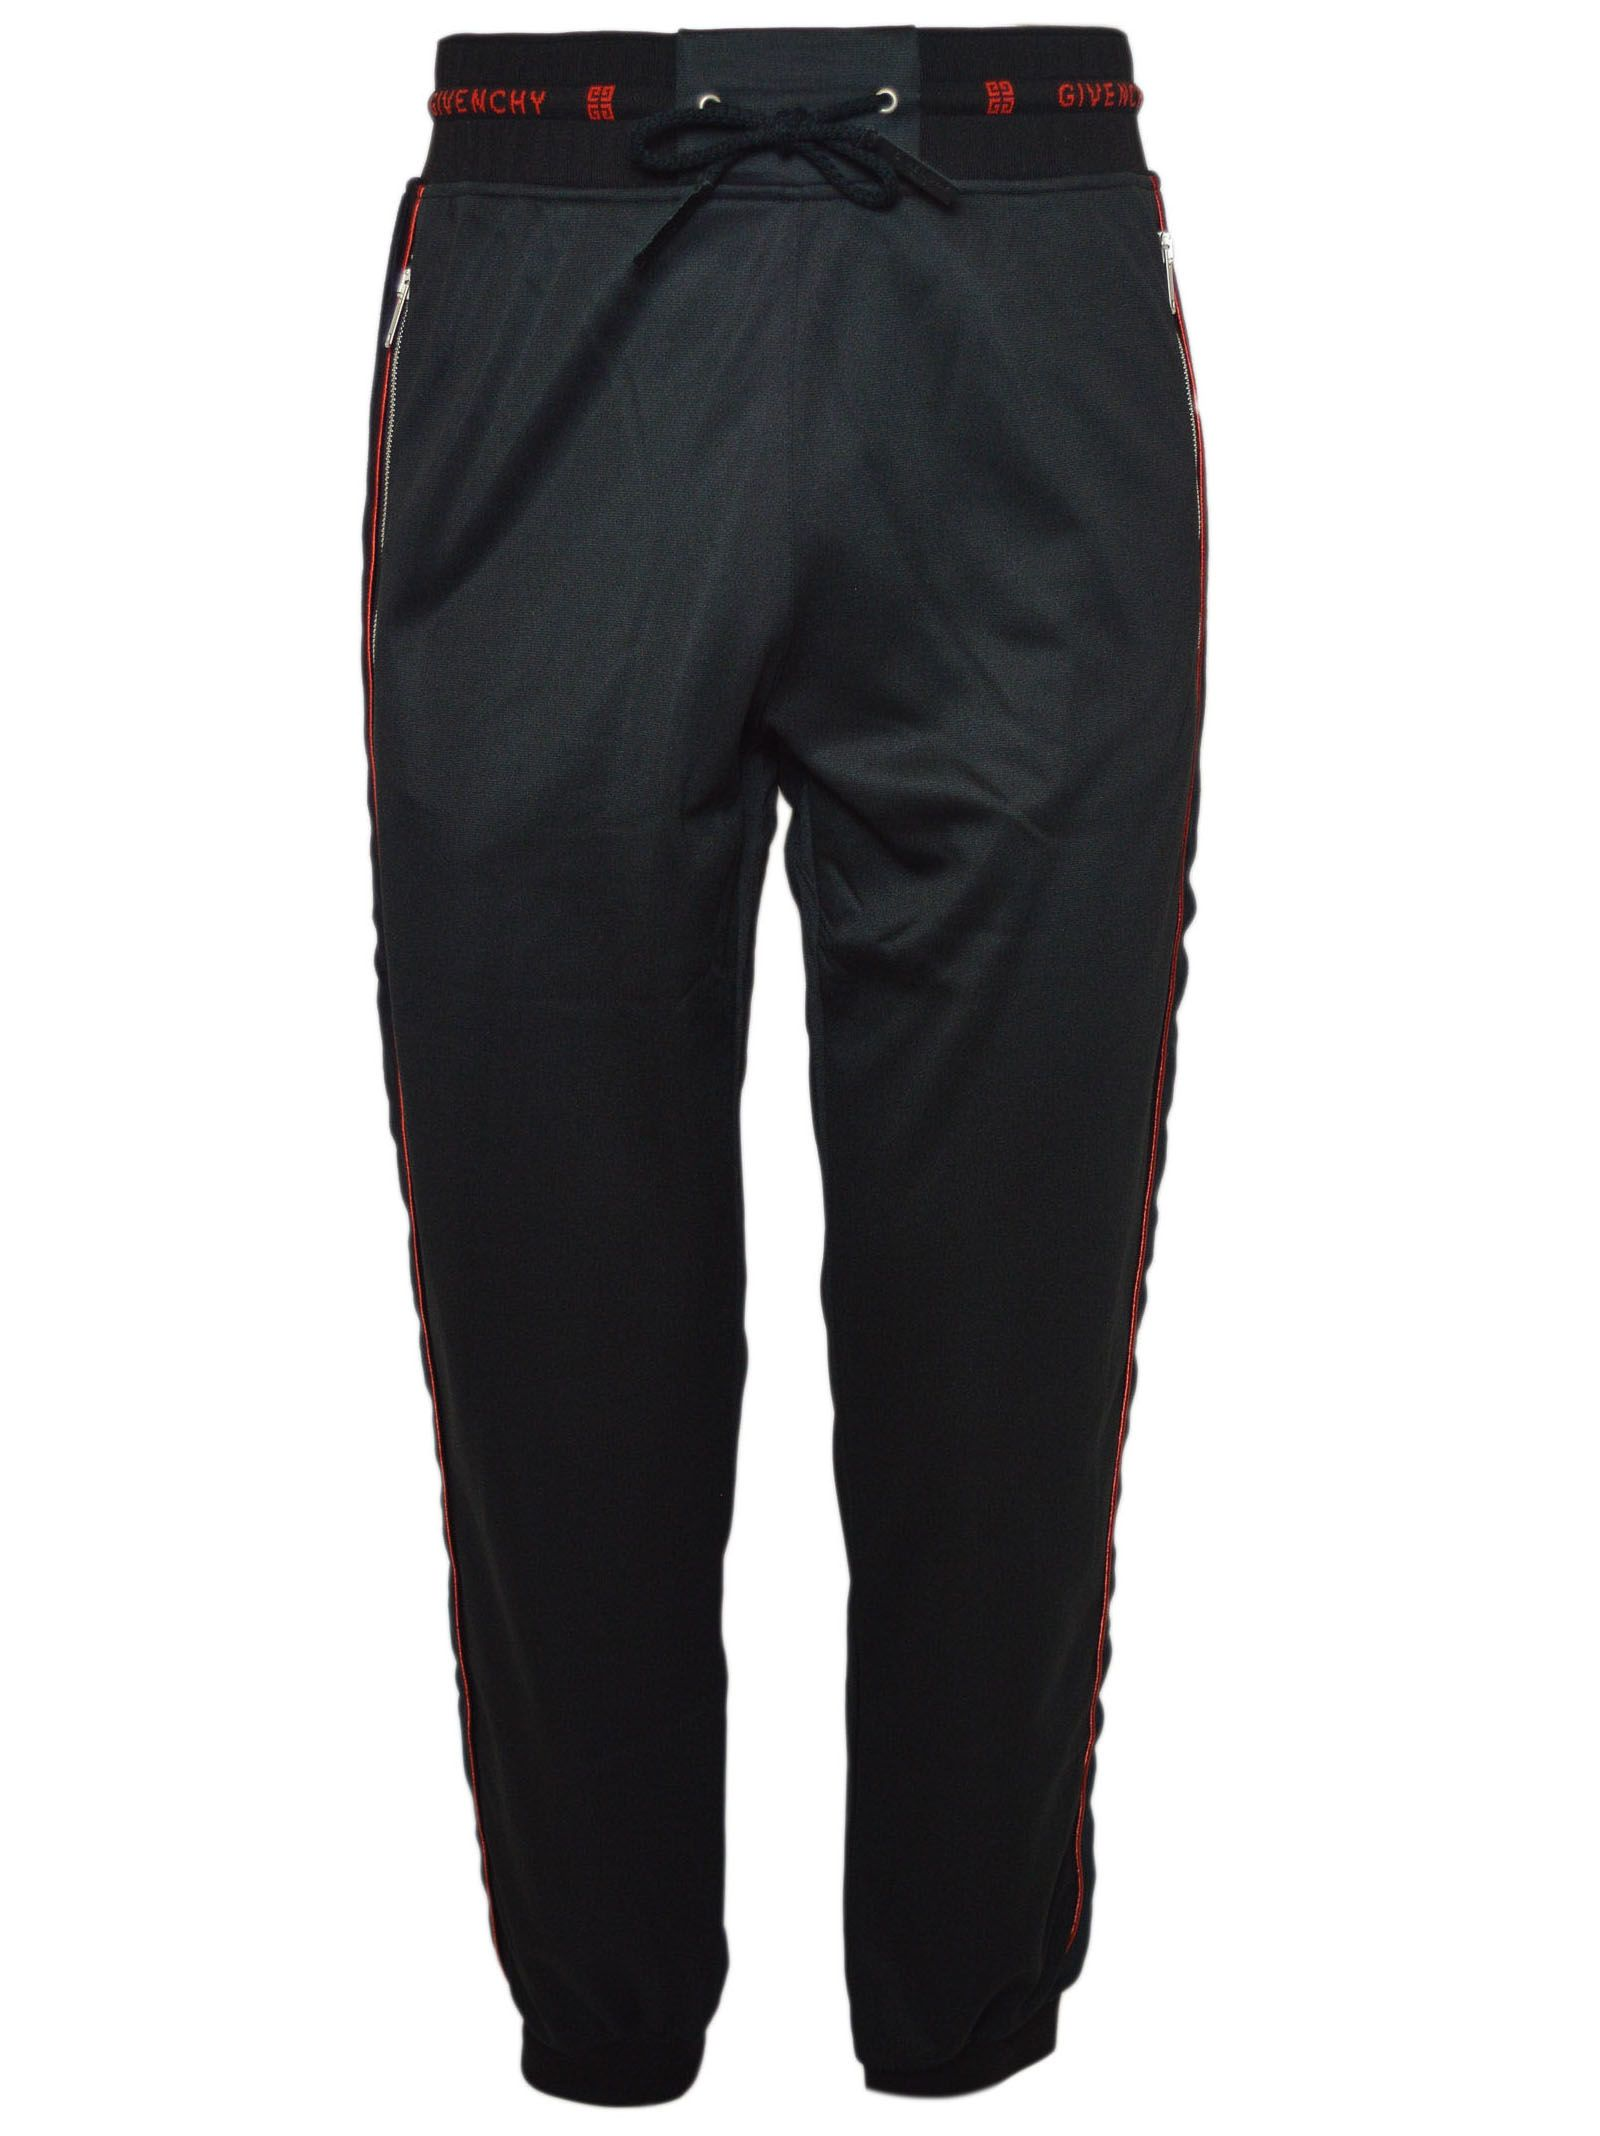 Givenchy Drawstring Track Pants